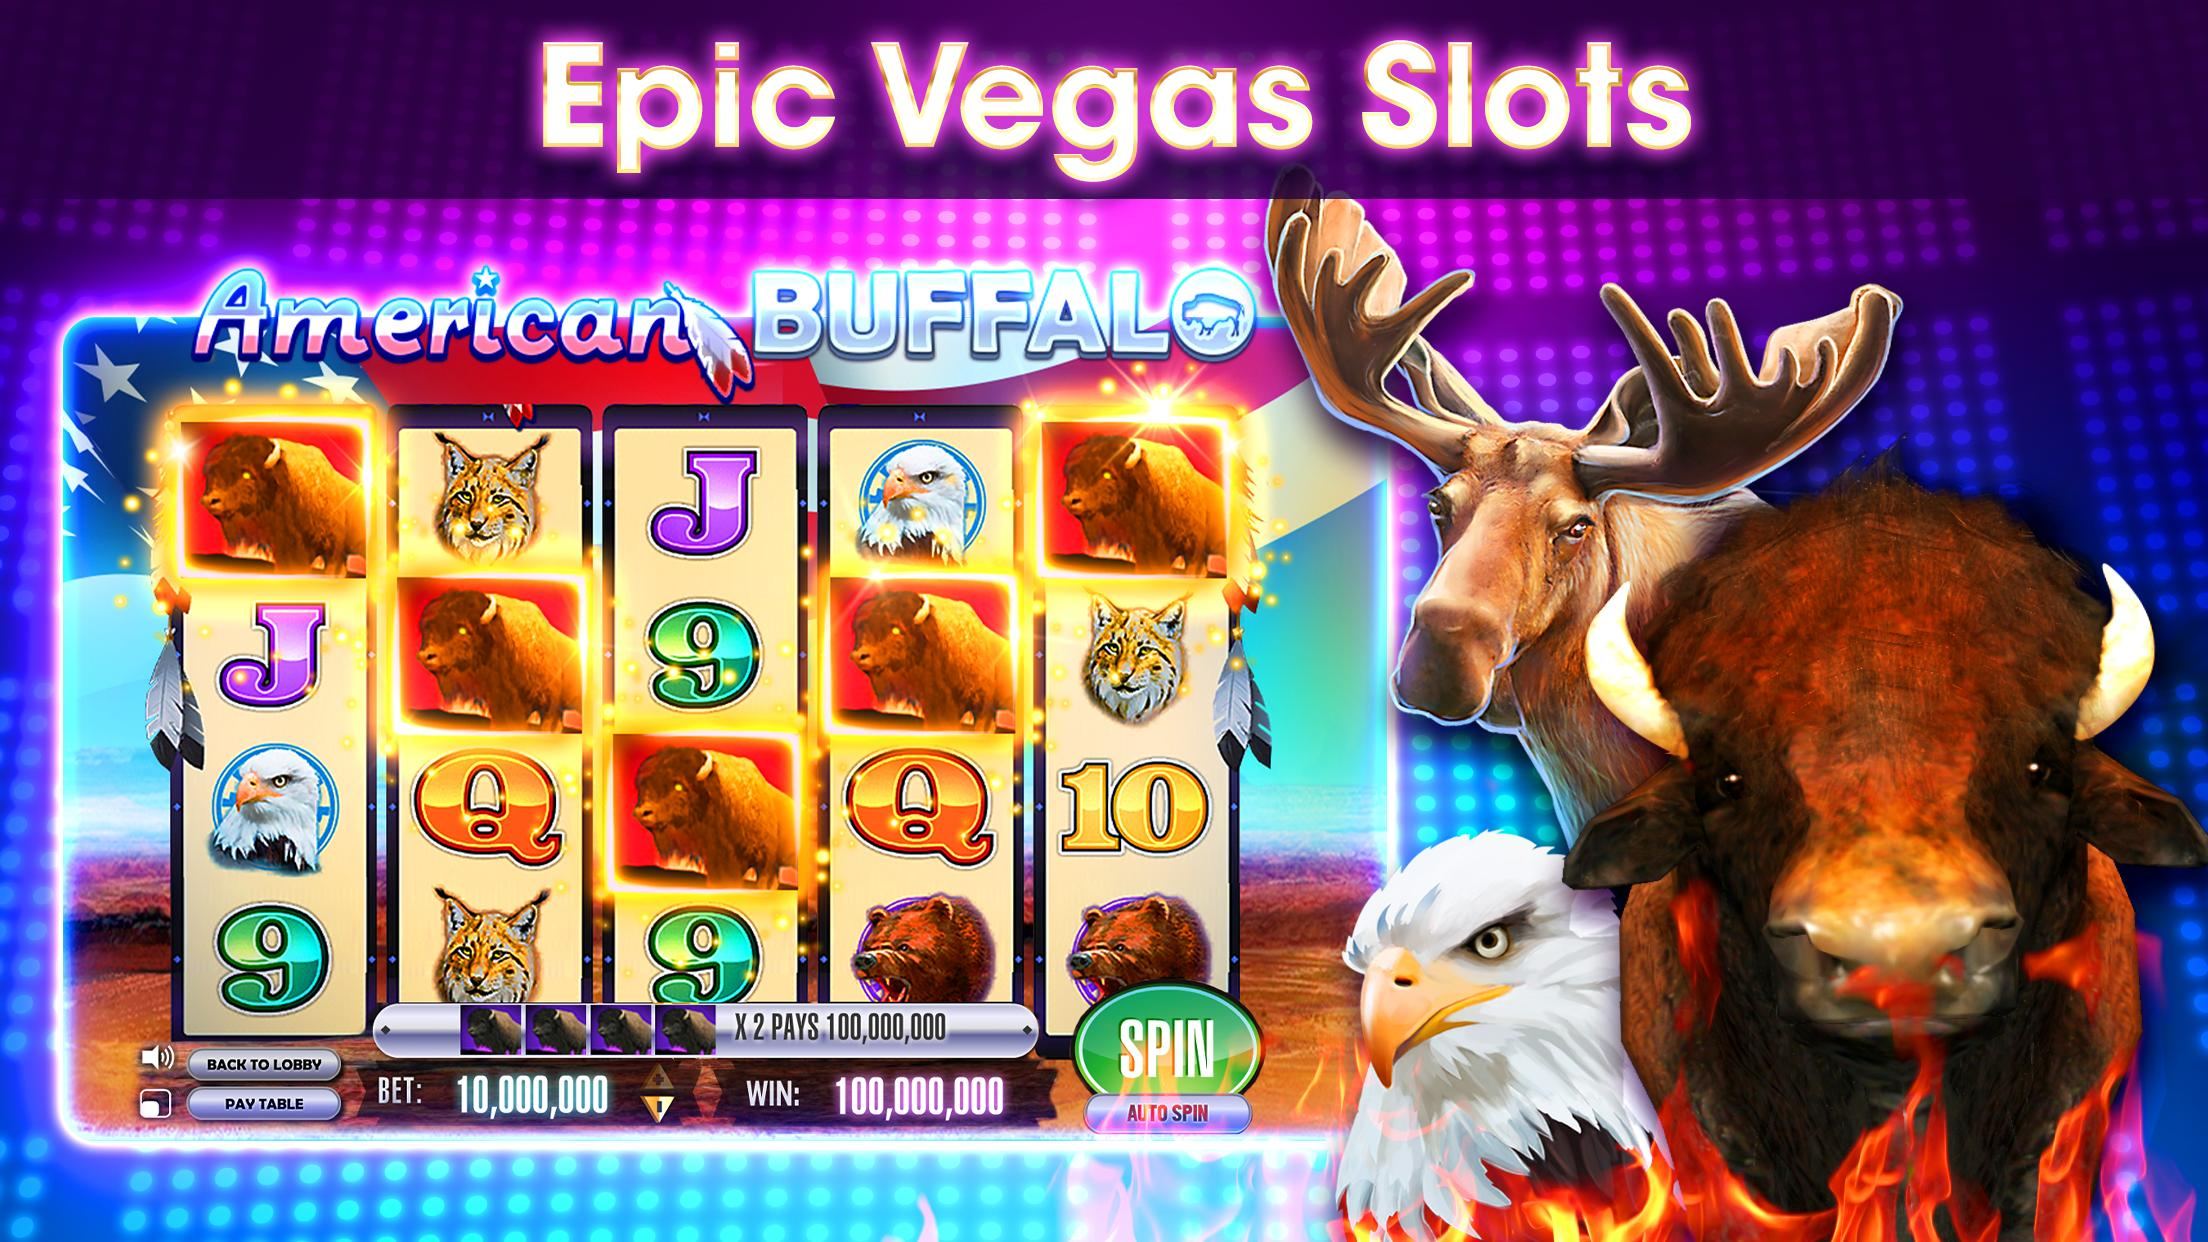 GSN Casino Play casino games- slots, poker, bingo 4.16.1 Screenshot 4